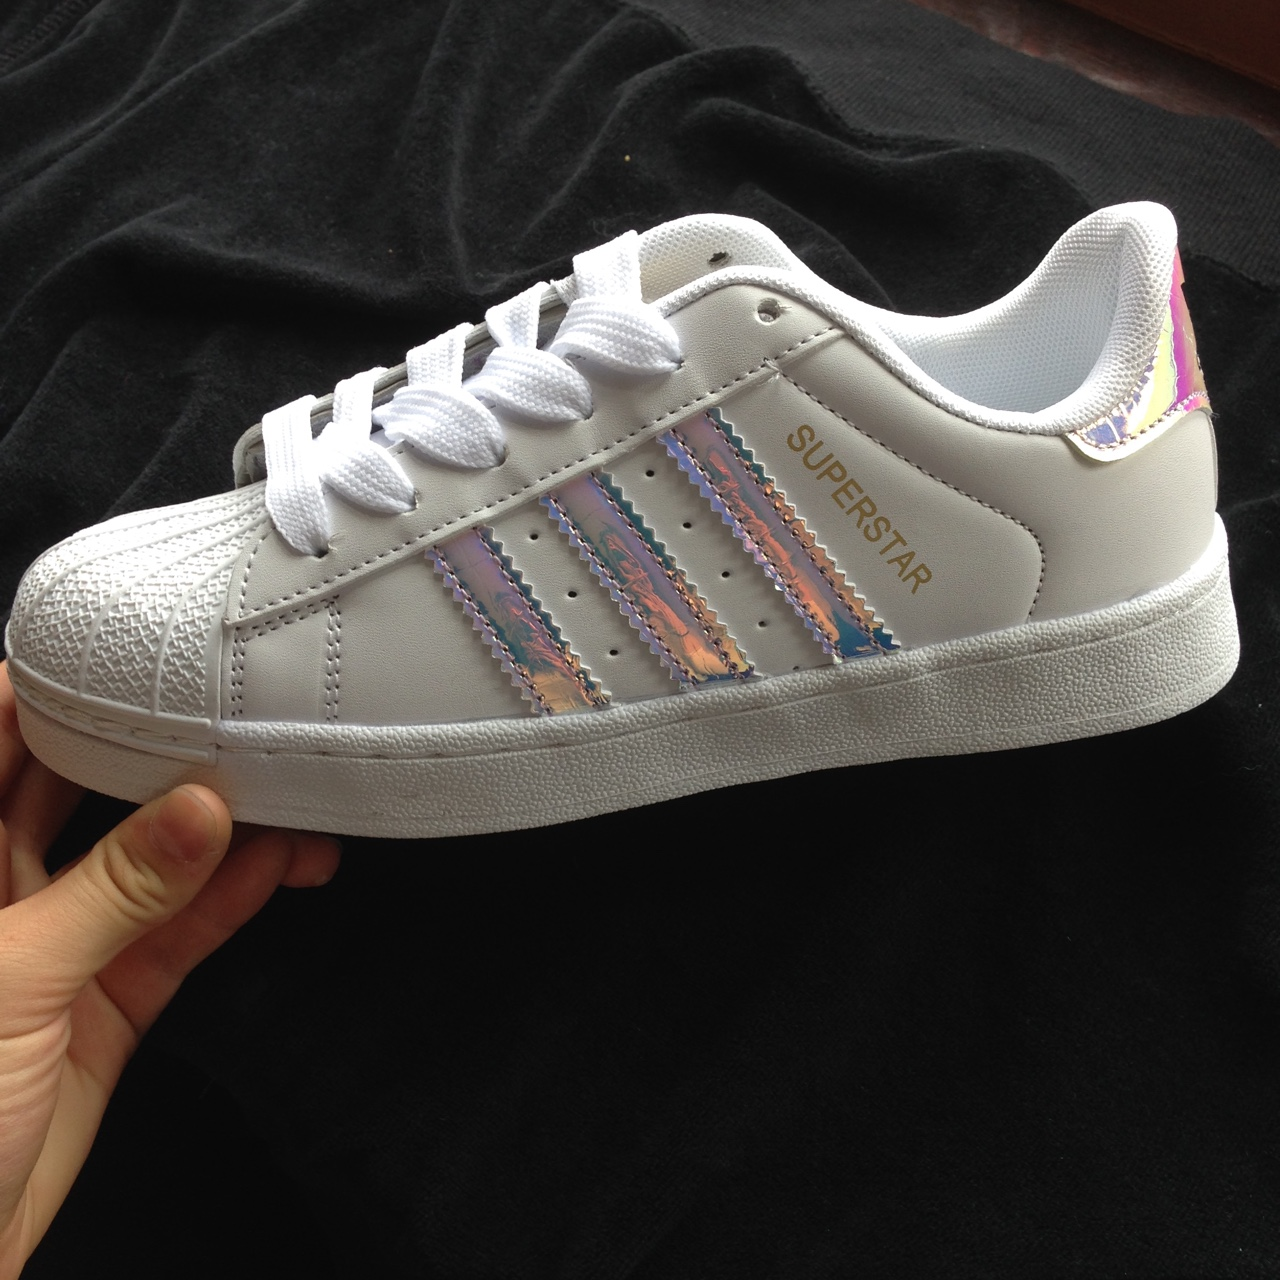 low priced dda68 4aee3 Awesome adidas superstar shoes with holographic... - Depop